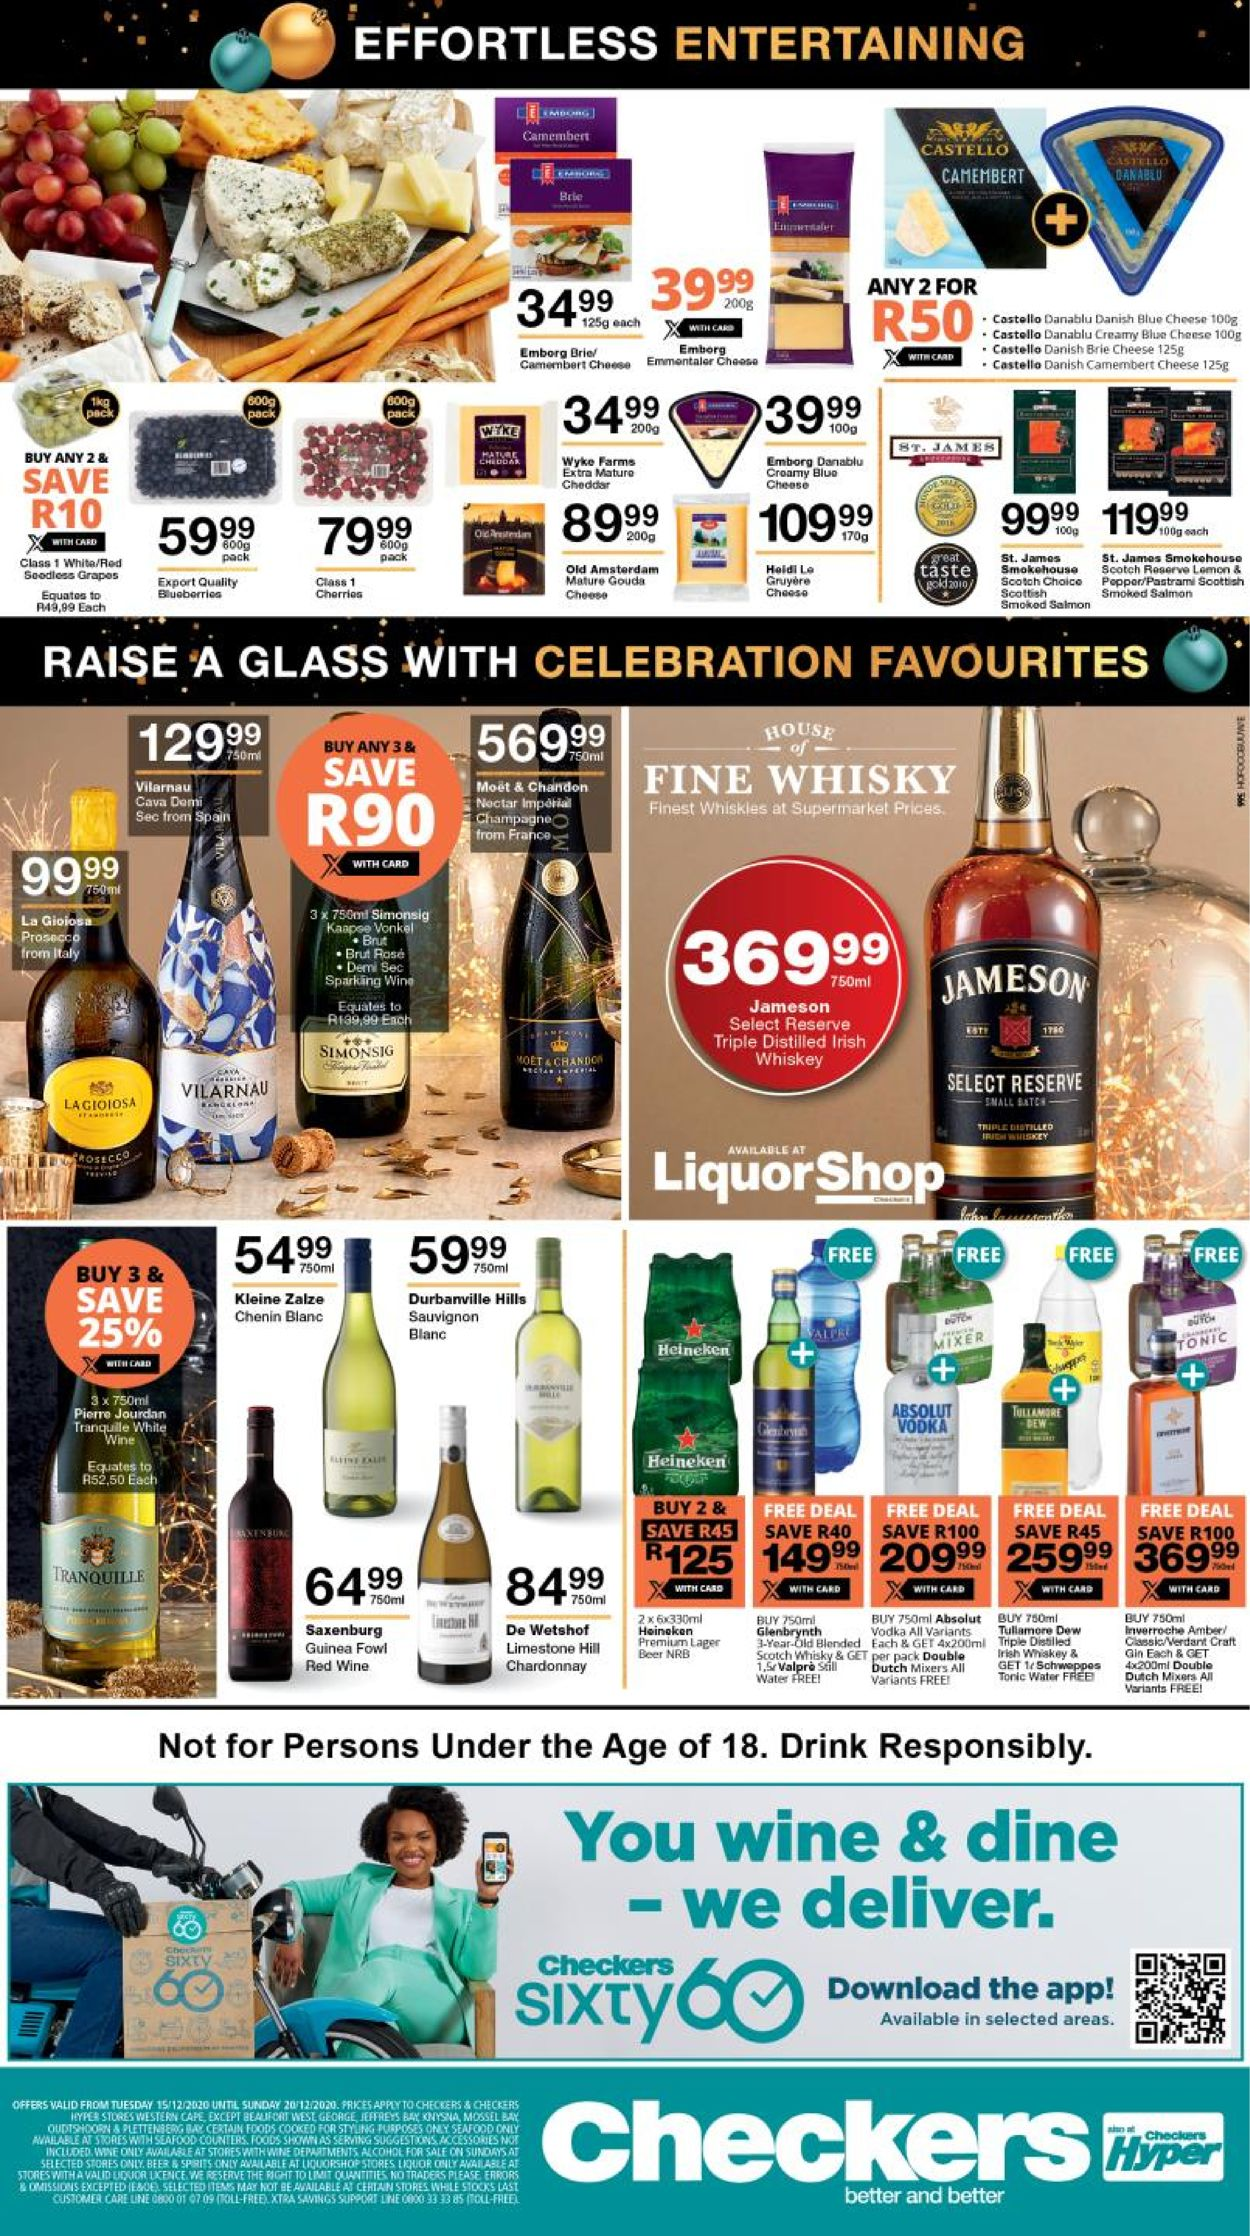 Checkers Xtra Merry Christmas 2020 Catalogue - 2020/12/15-2020/12/20 (Page 3)